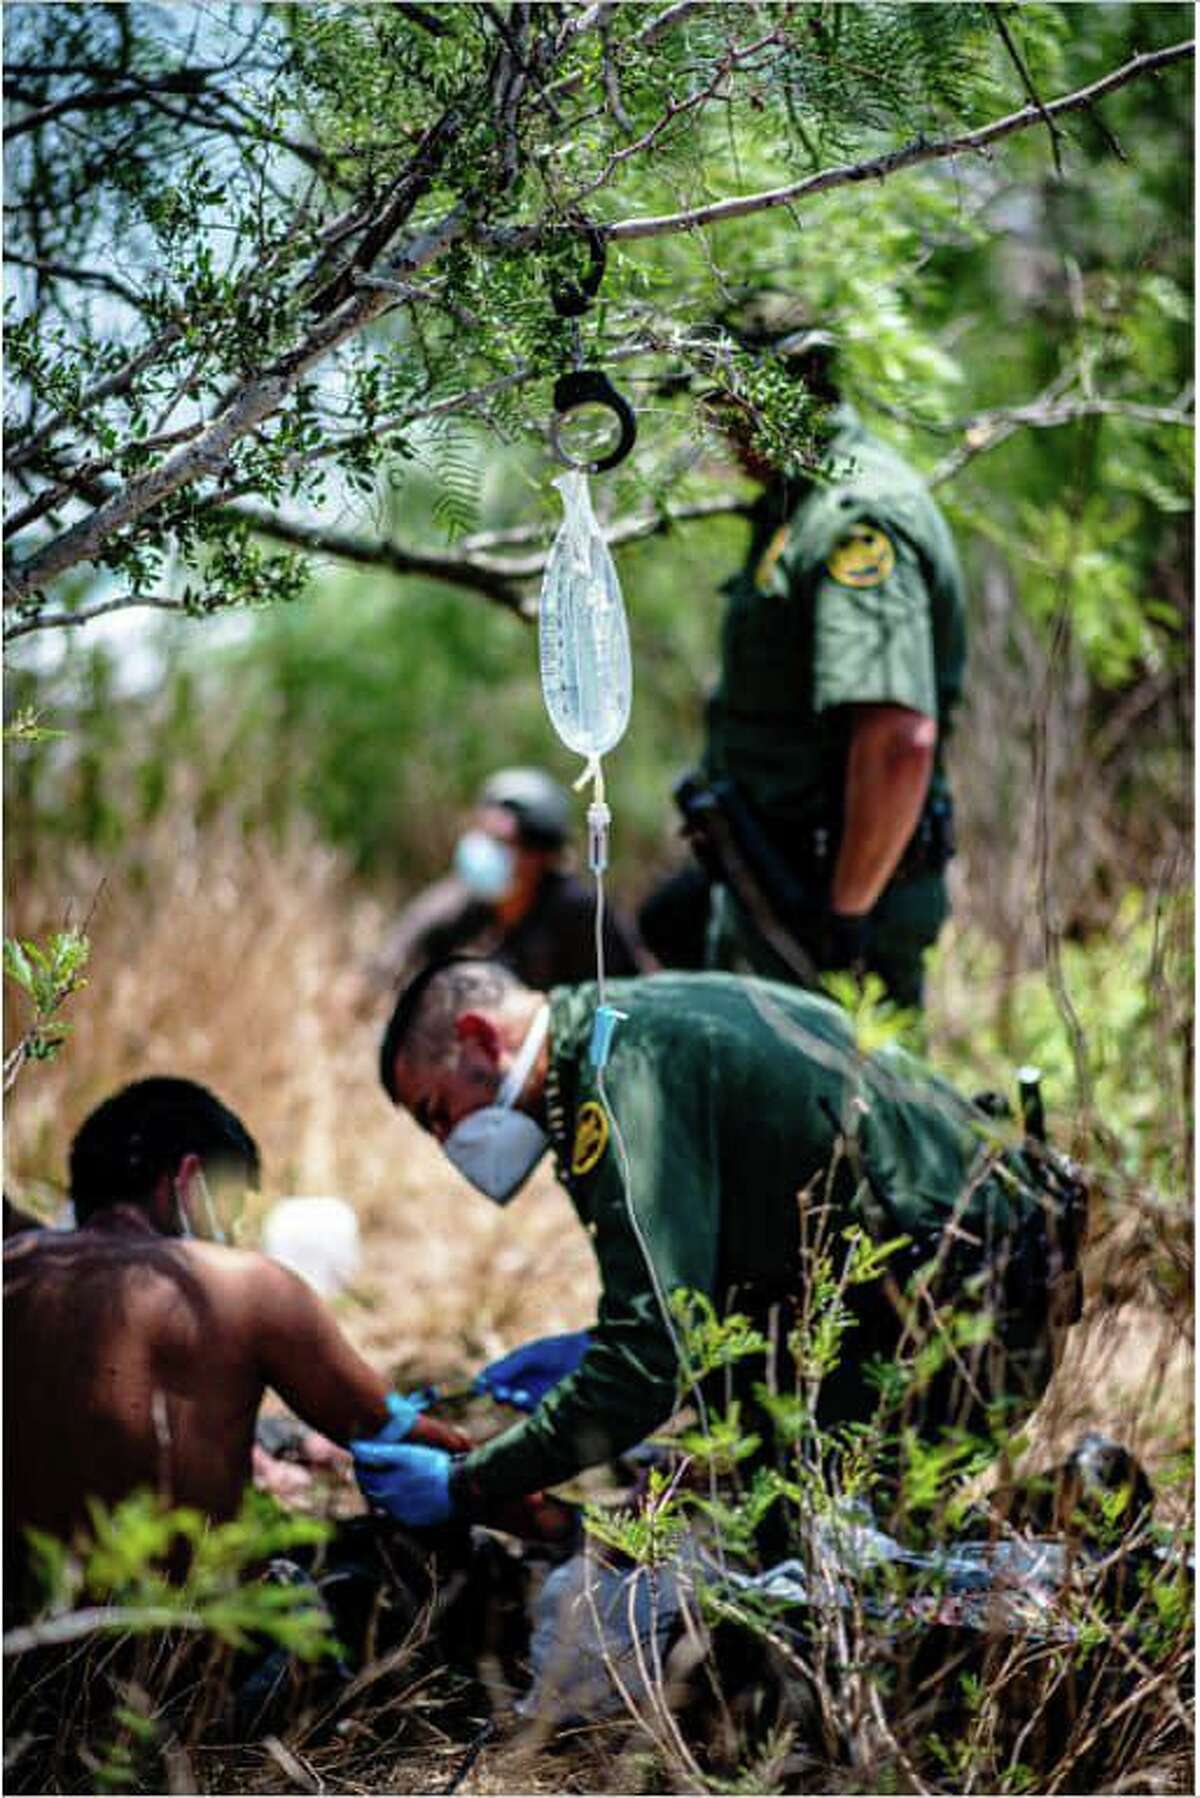 A U.S. Border Patrol agent is seen rendering aid to a migrant who was suffering from severe dehydration.